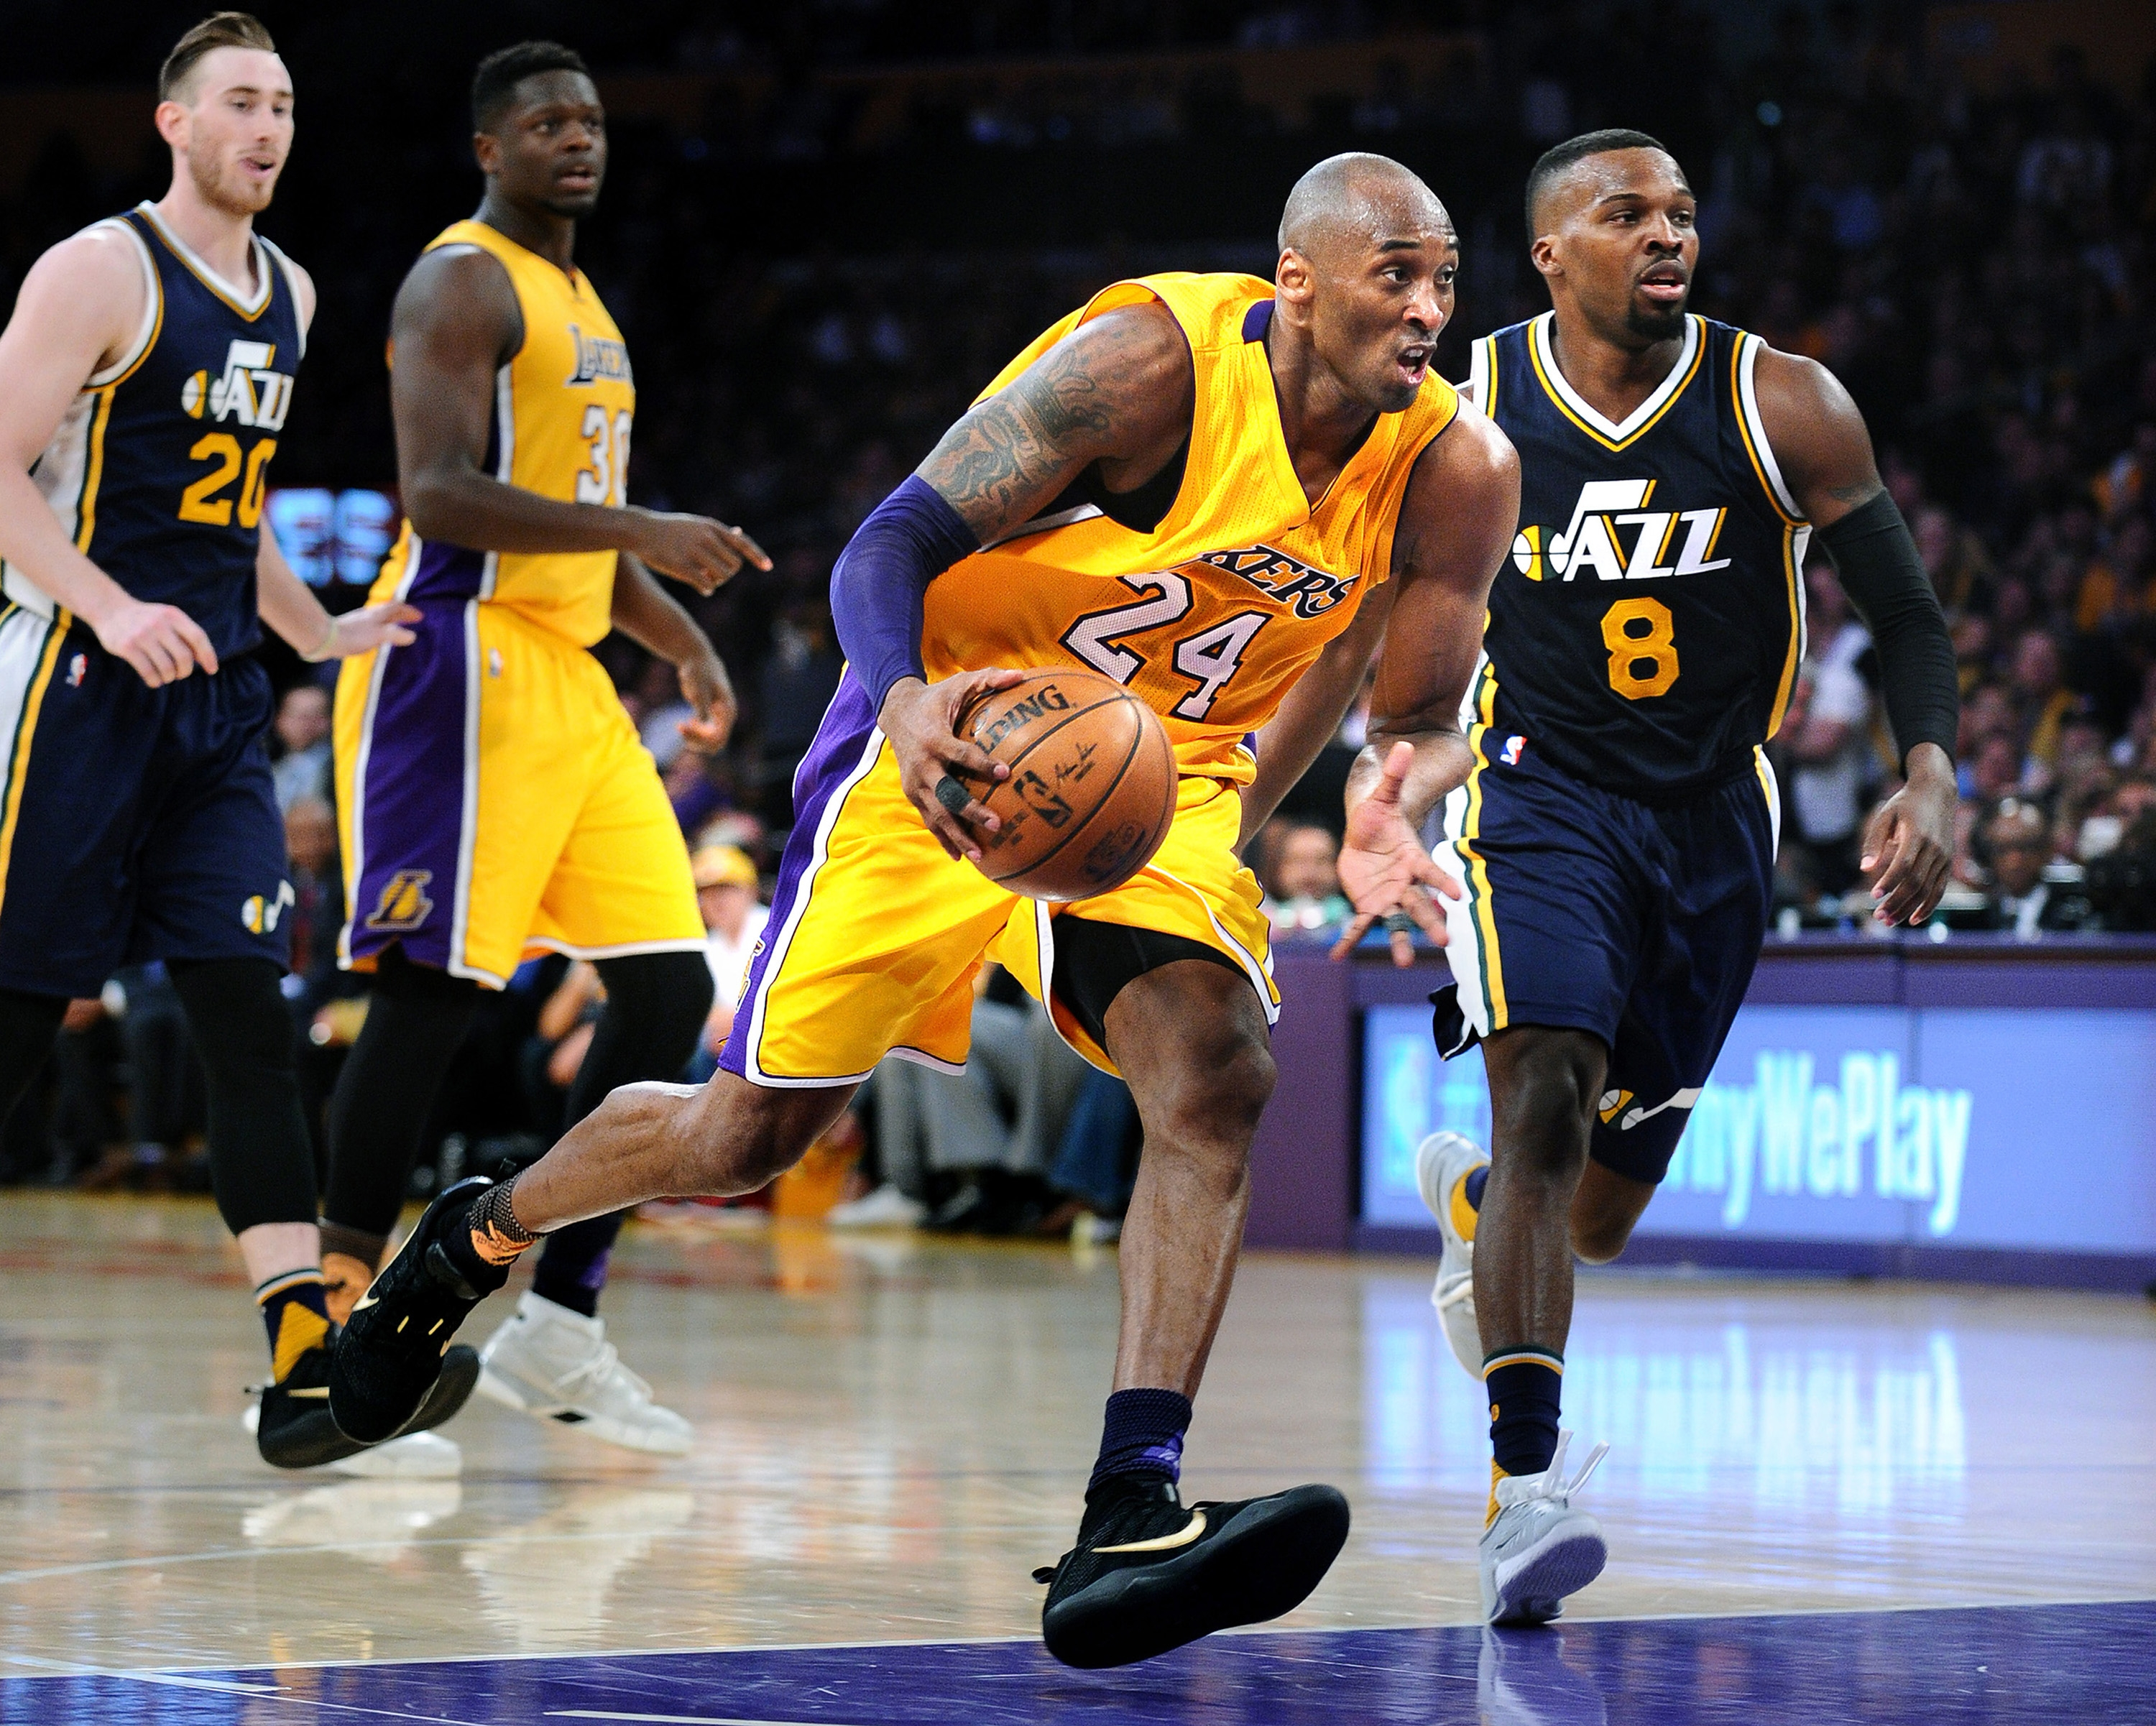 Like any young player, Kobe Bryant wishes he could have done some things differently early in his career.